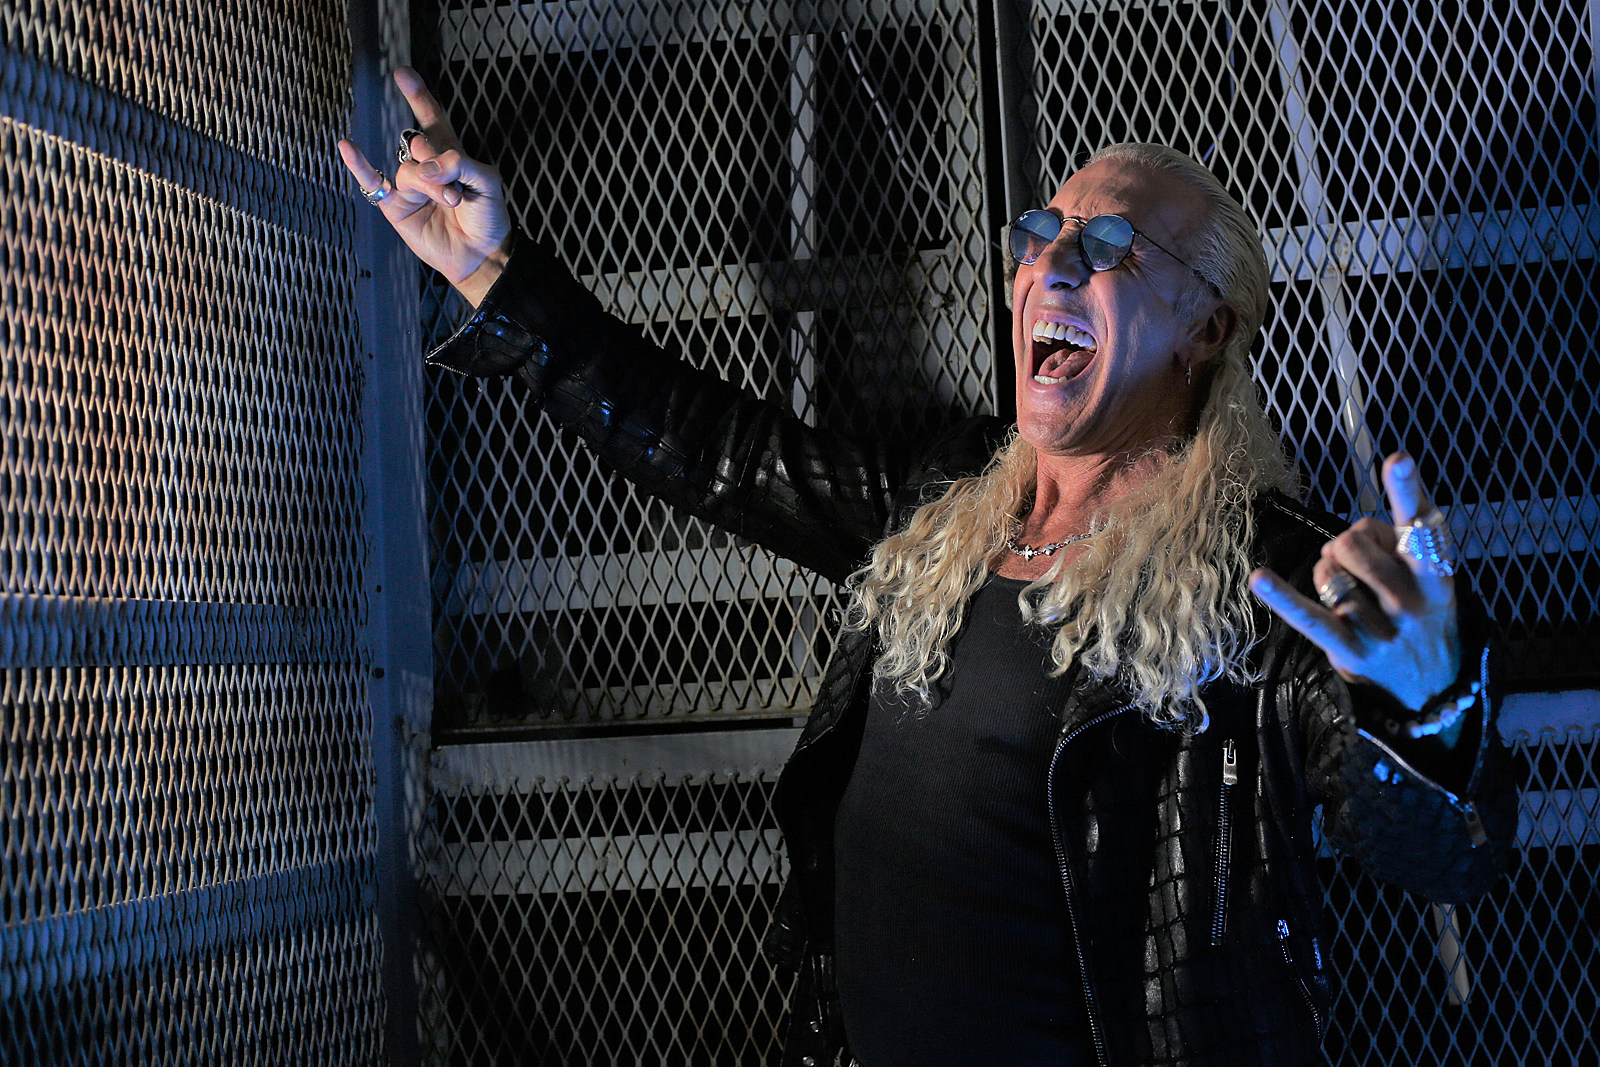 Dee Snider: 'I Was An A–hole Too': Exclusive Interview